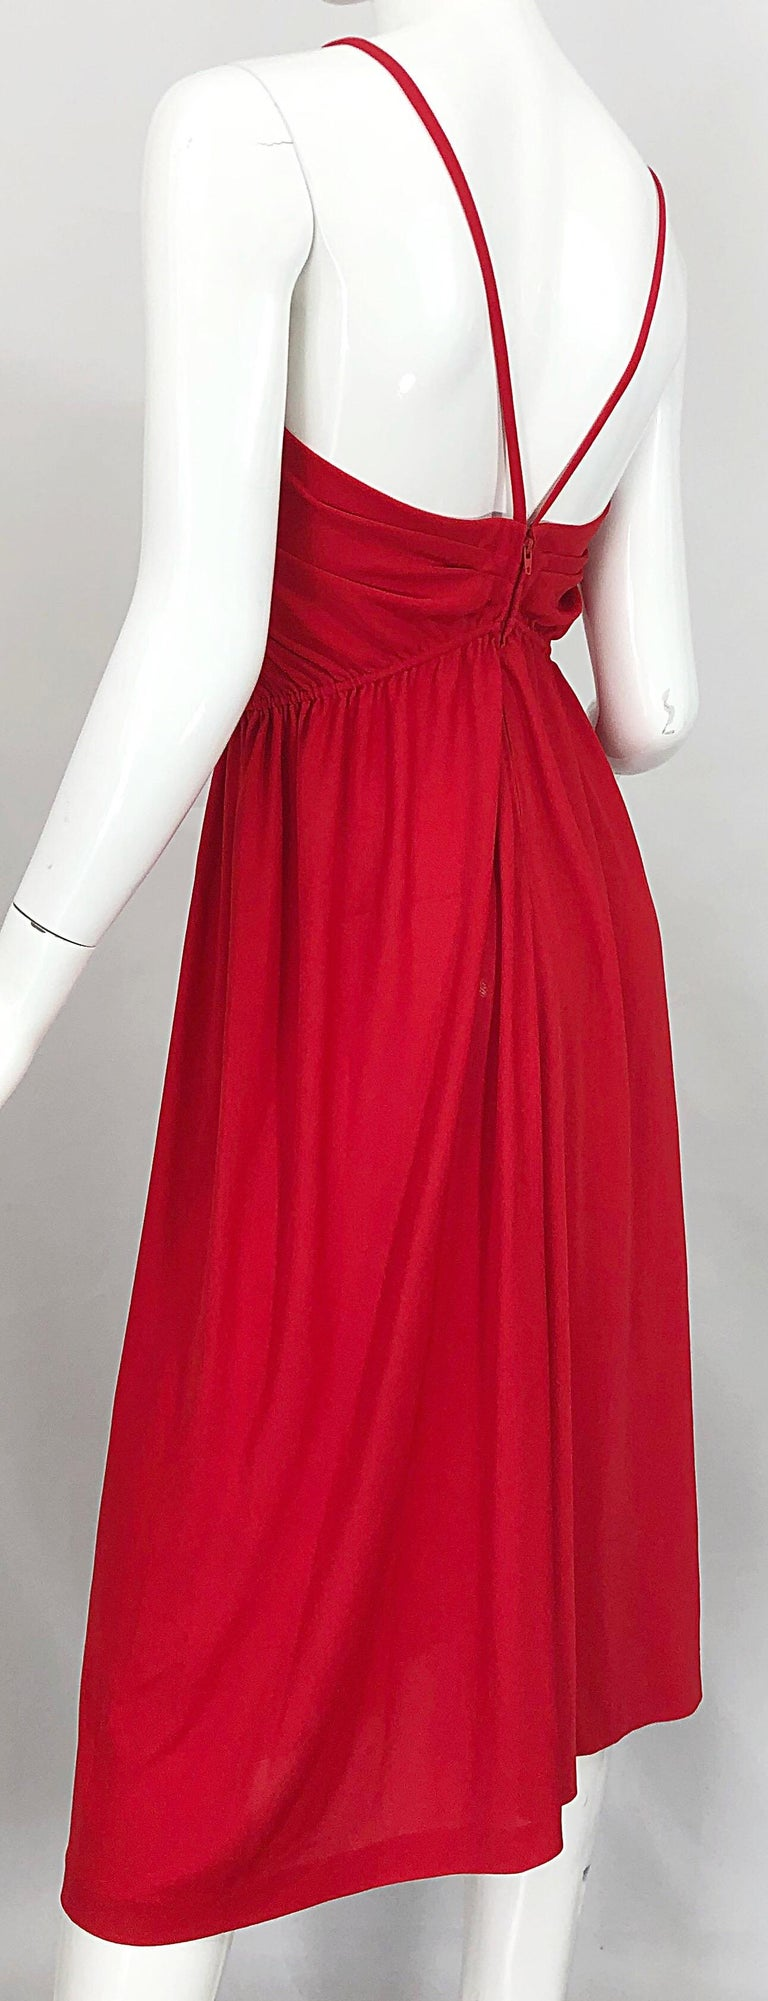 1970s Loris Azzaro Crimson Red Silk Jersey Grecian Inspired Vintage 70s Dress For Sale 2